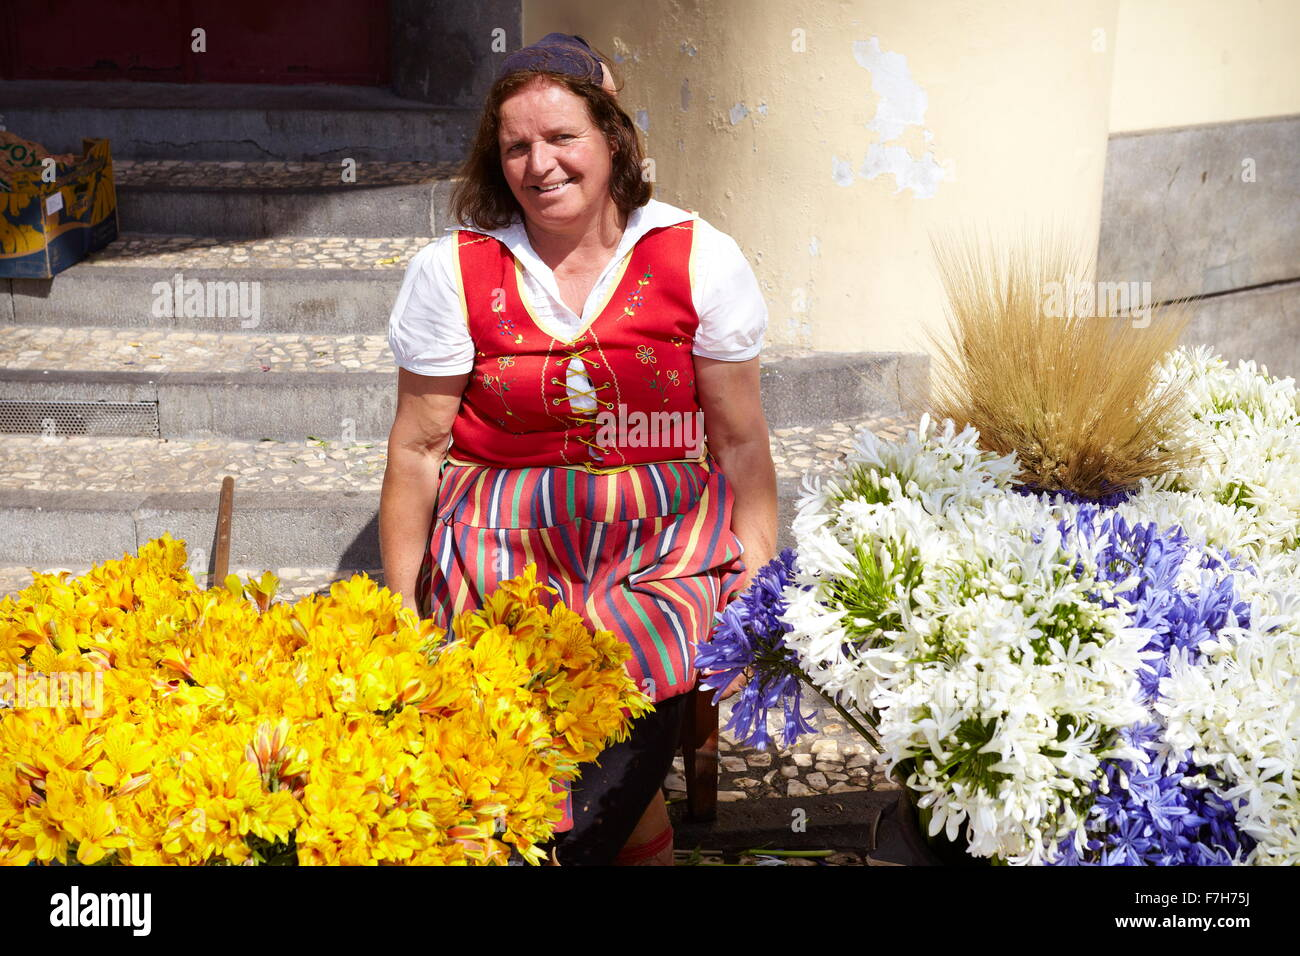 Flowers seller in Funchal market, Madeira, Portugal - Stock Image